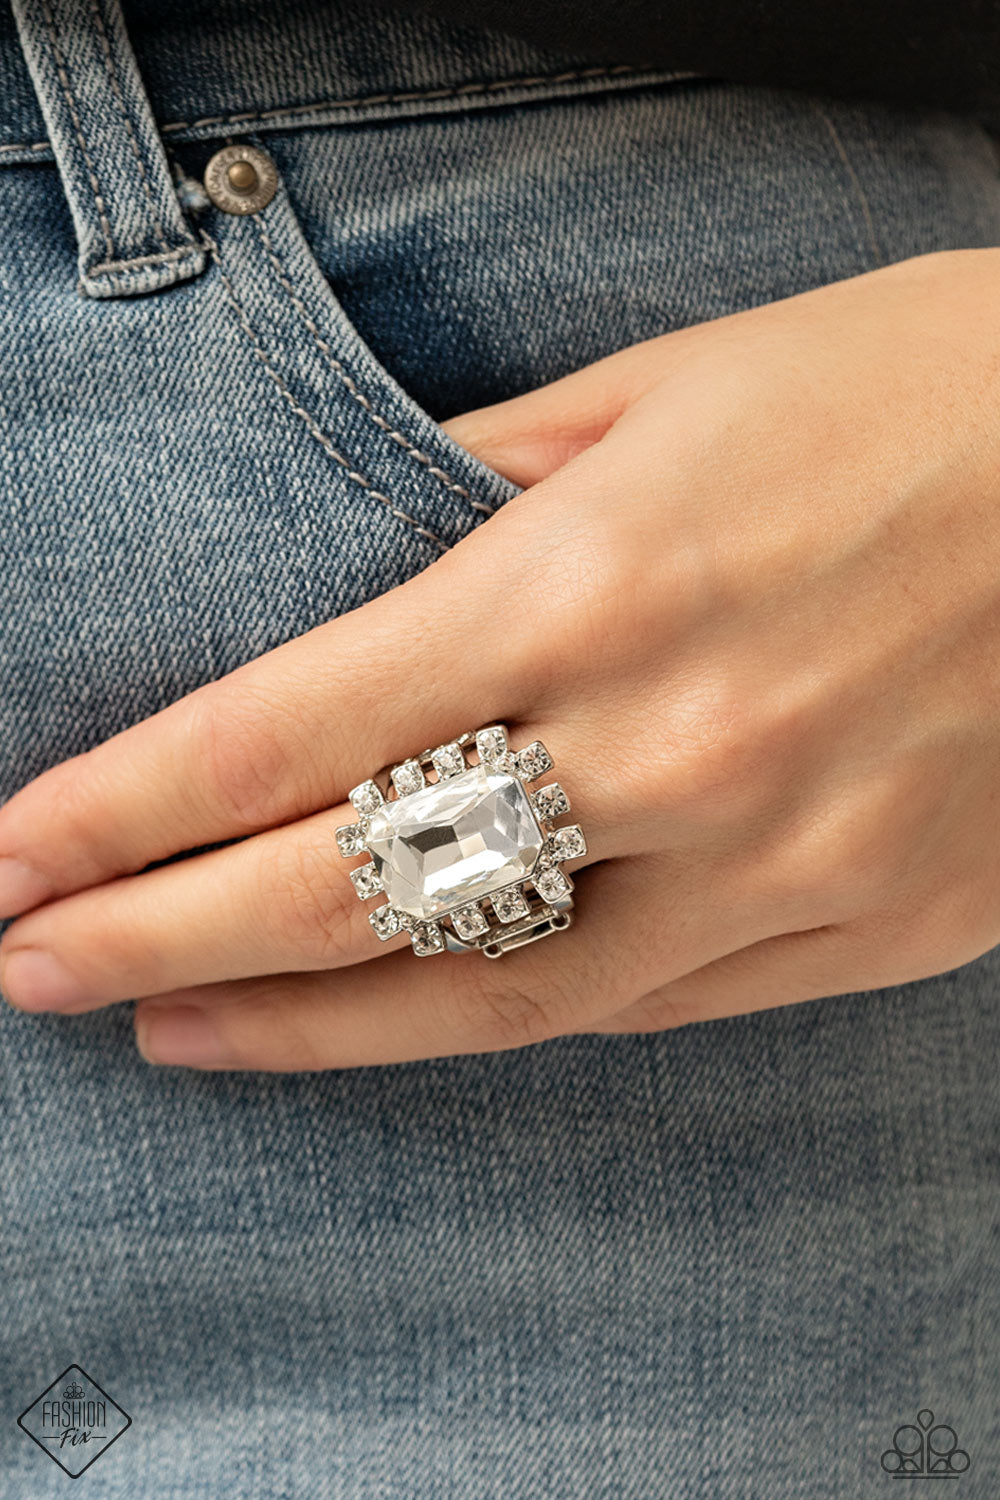 Paparazzi Jewelry & Accessories - Galactic Glamour - White Ring. Bling By Titia Boutique